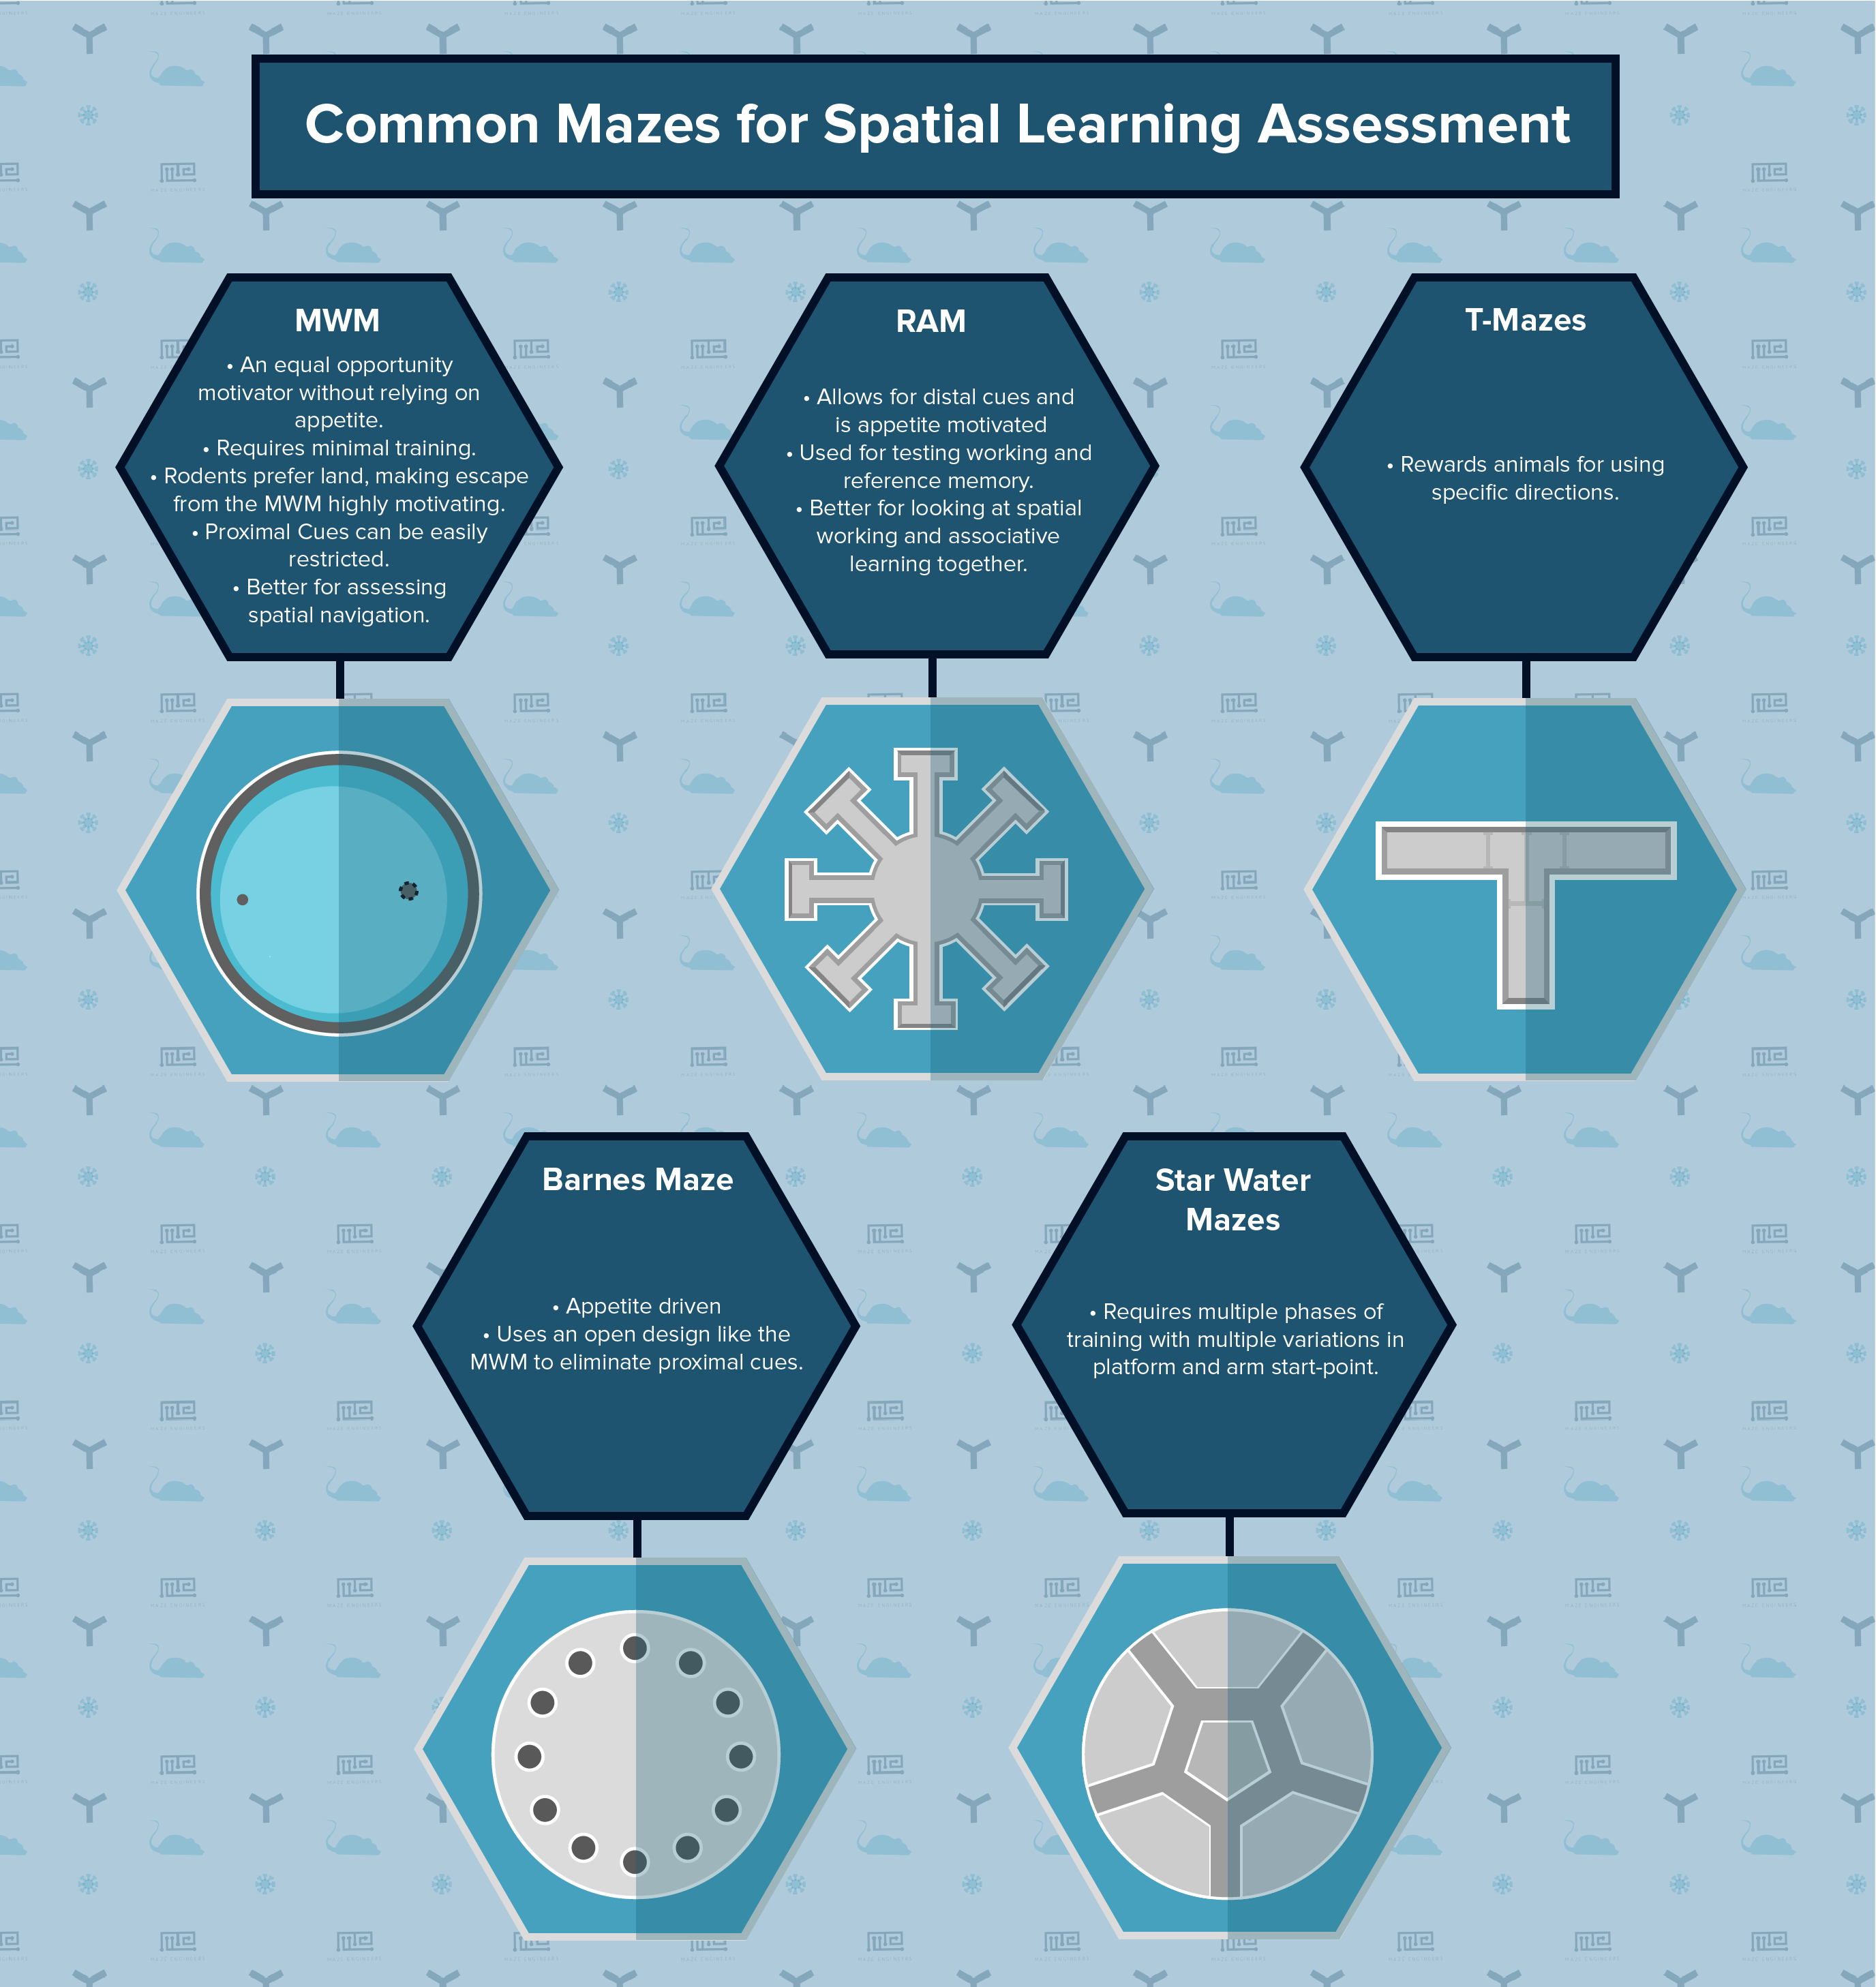 common mazes used in spatial learning